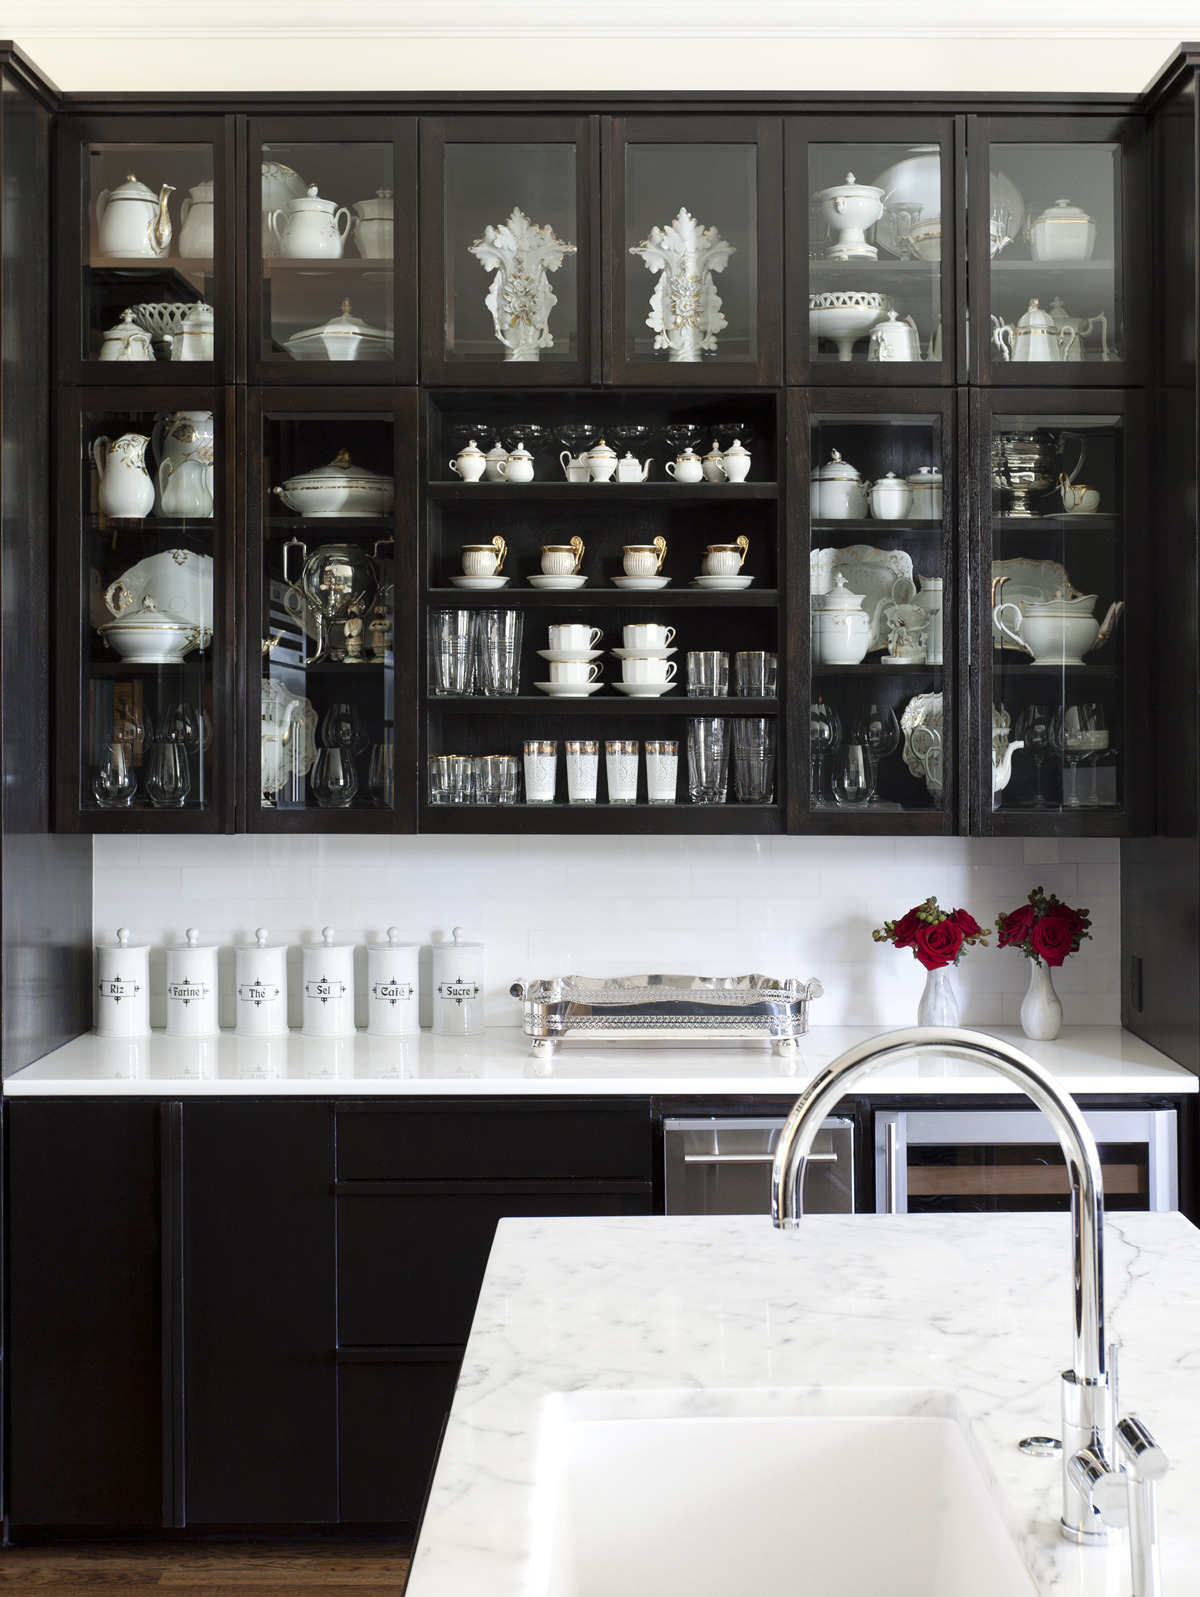 Cabinets with Glass Doors Lovely Black Kitchen Cabinets with Glass Doors